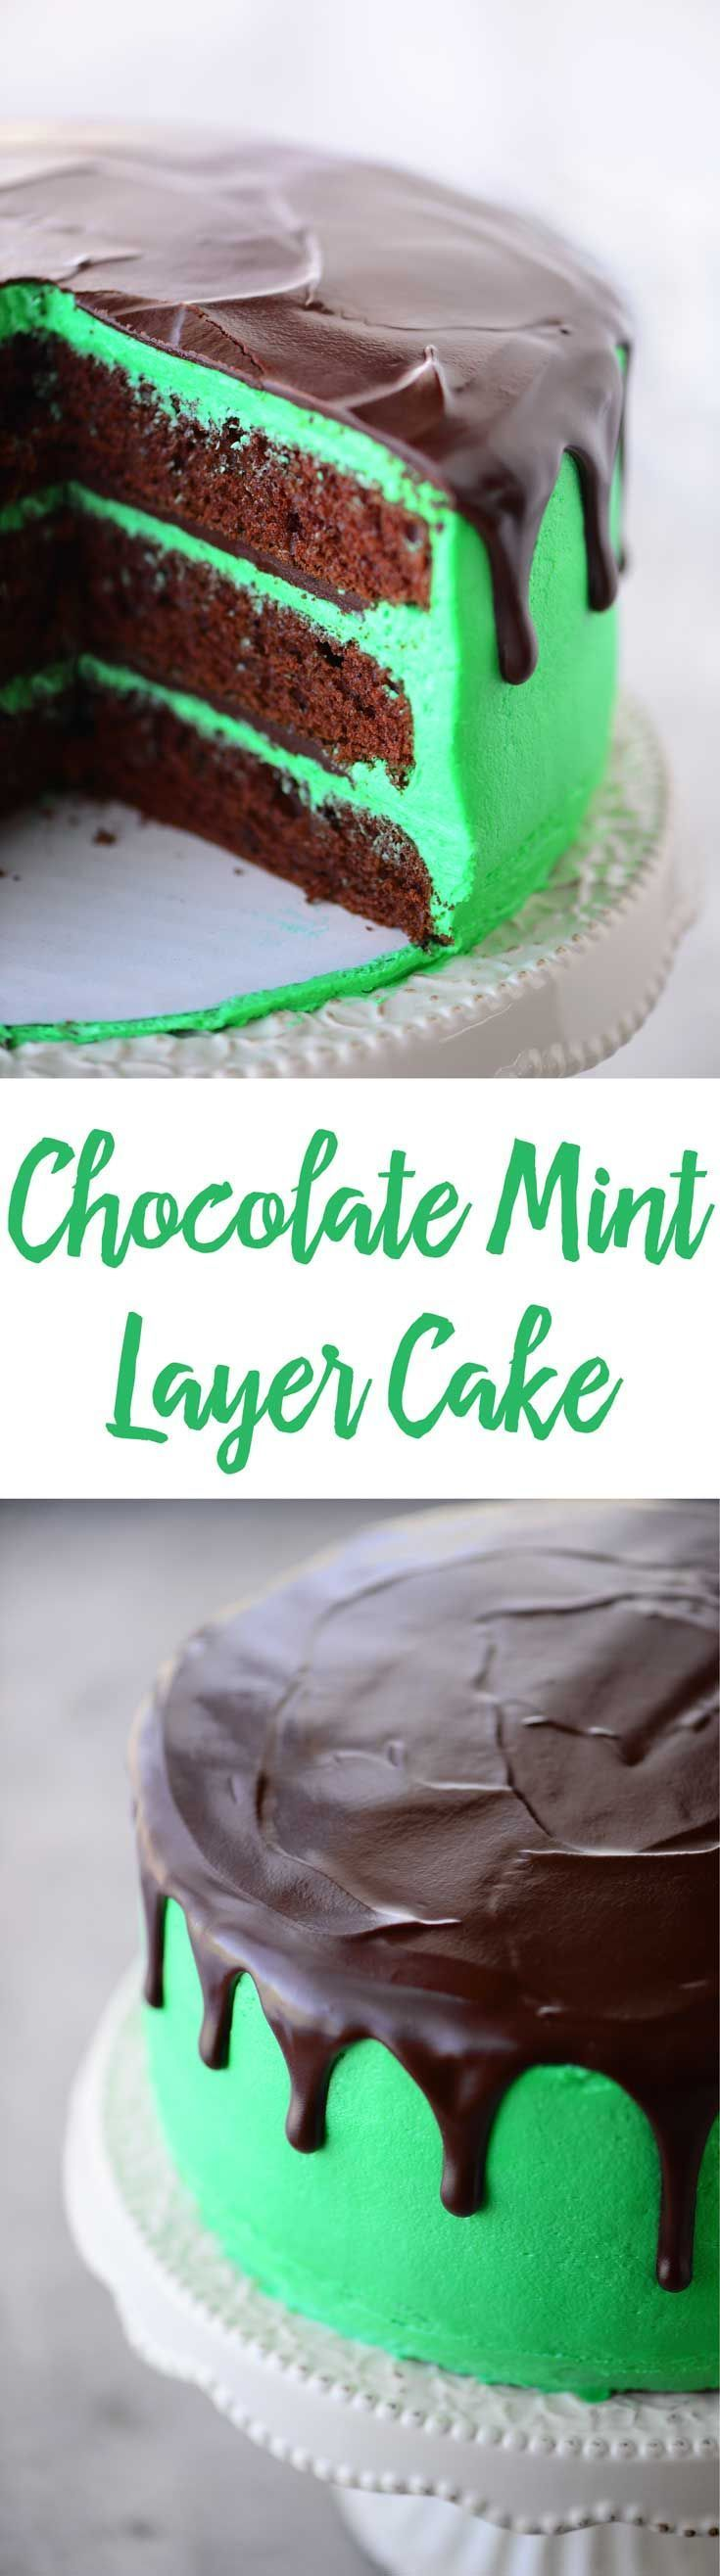 This Chocolate Mint Layer Cake recipe has tender layers of chocolate cake with fluffy mint buttercream and smooth, melt in your mouth chocolate mint ganache.